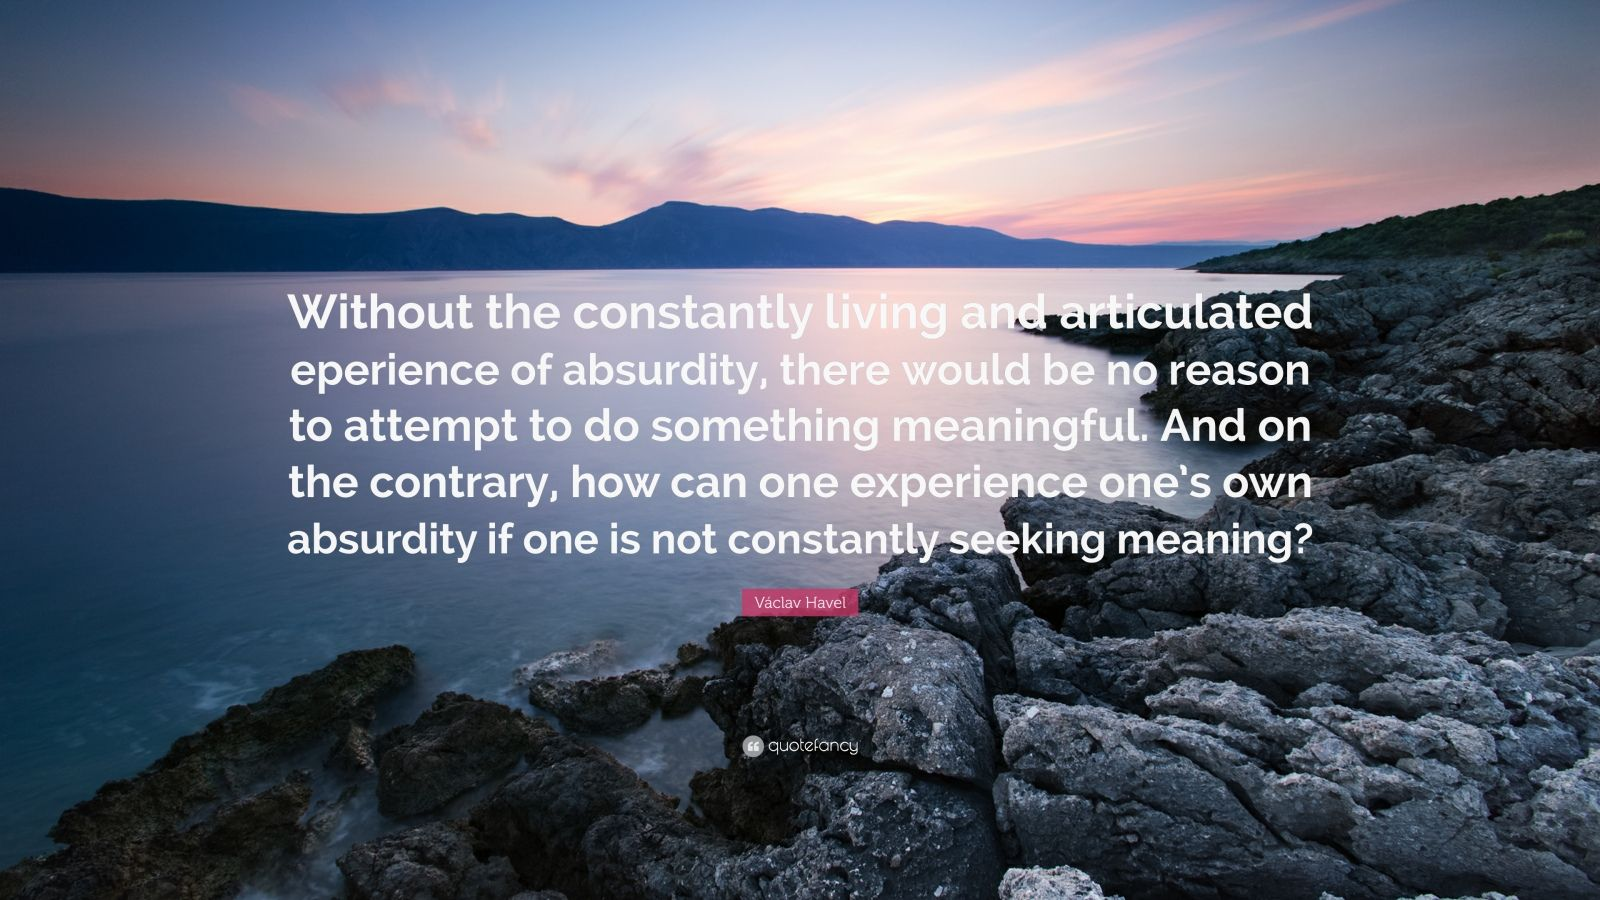 """Václav Havel Quote: """"Without the constantly living and articulated eperience of absurdity, there would be no reason to attempt to do something meaningful. And on the contrary, how can one experience one's own absurdity if one is not constantly seeking meaning?"""""""